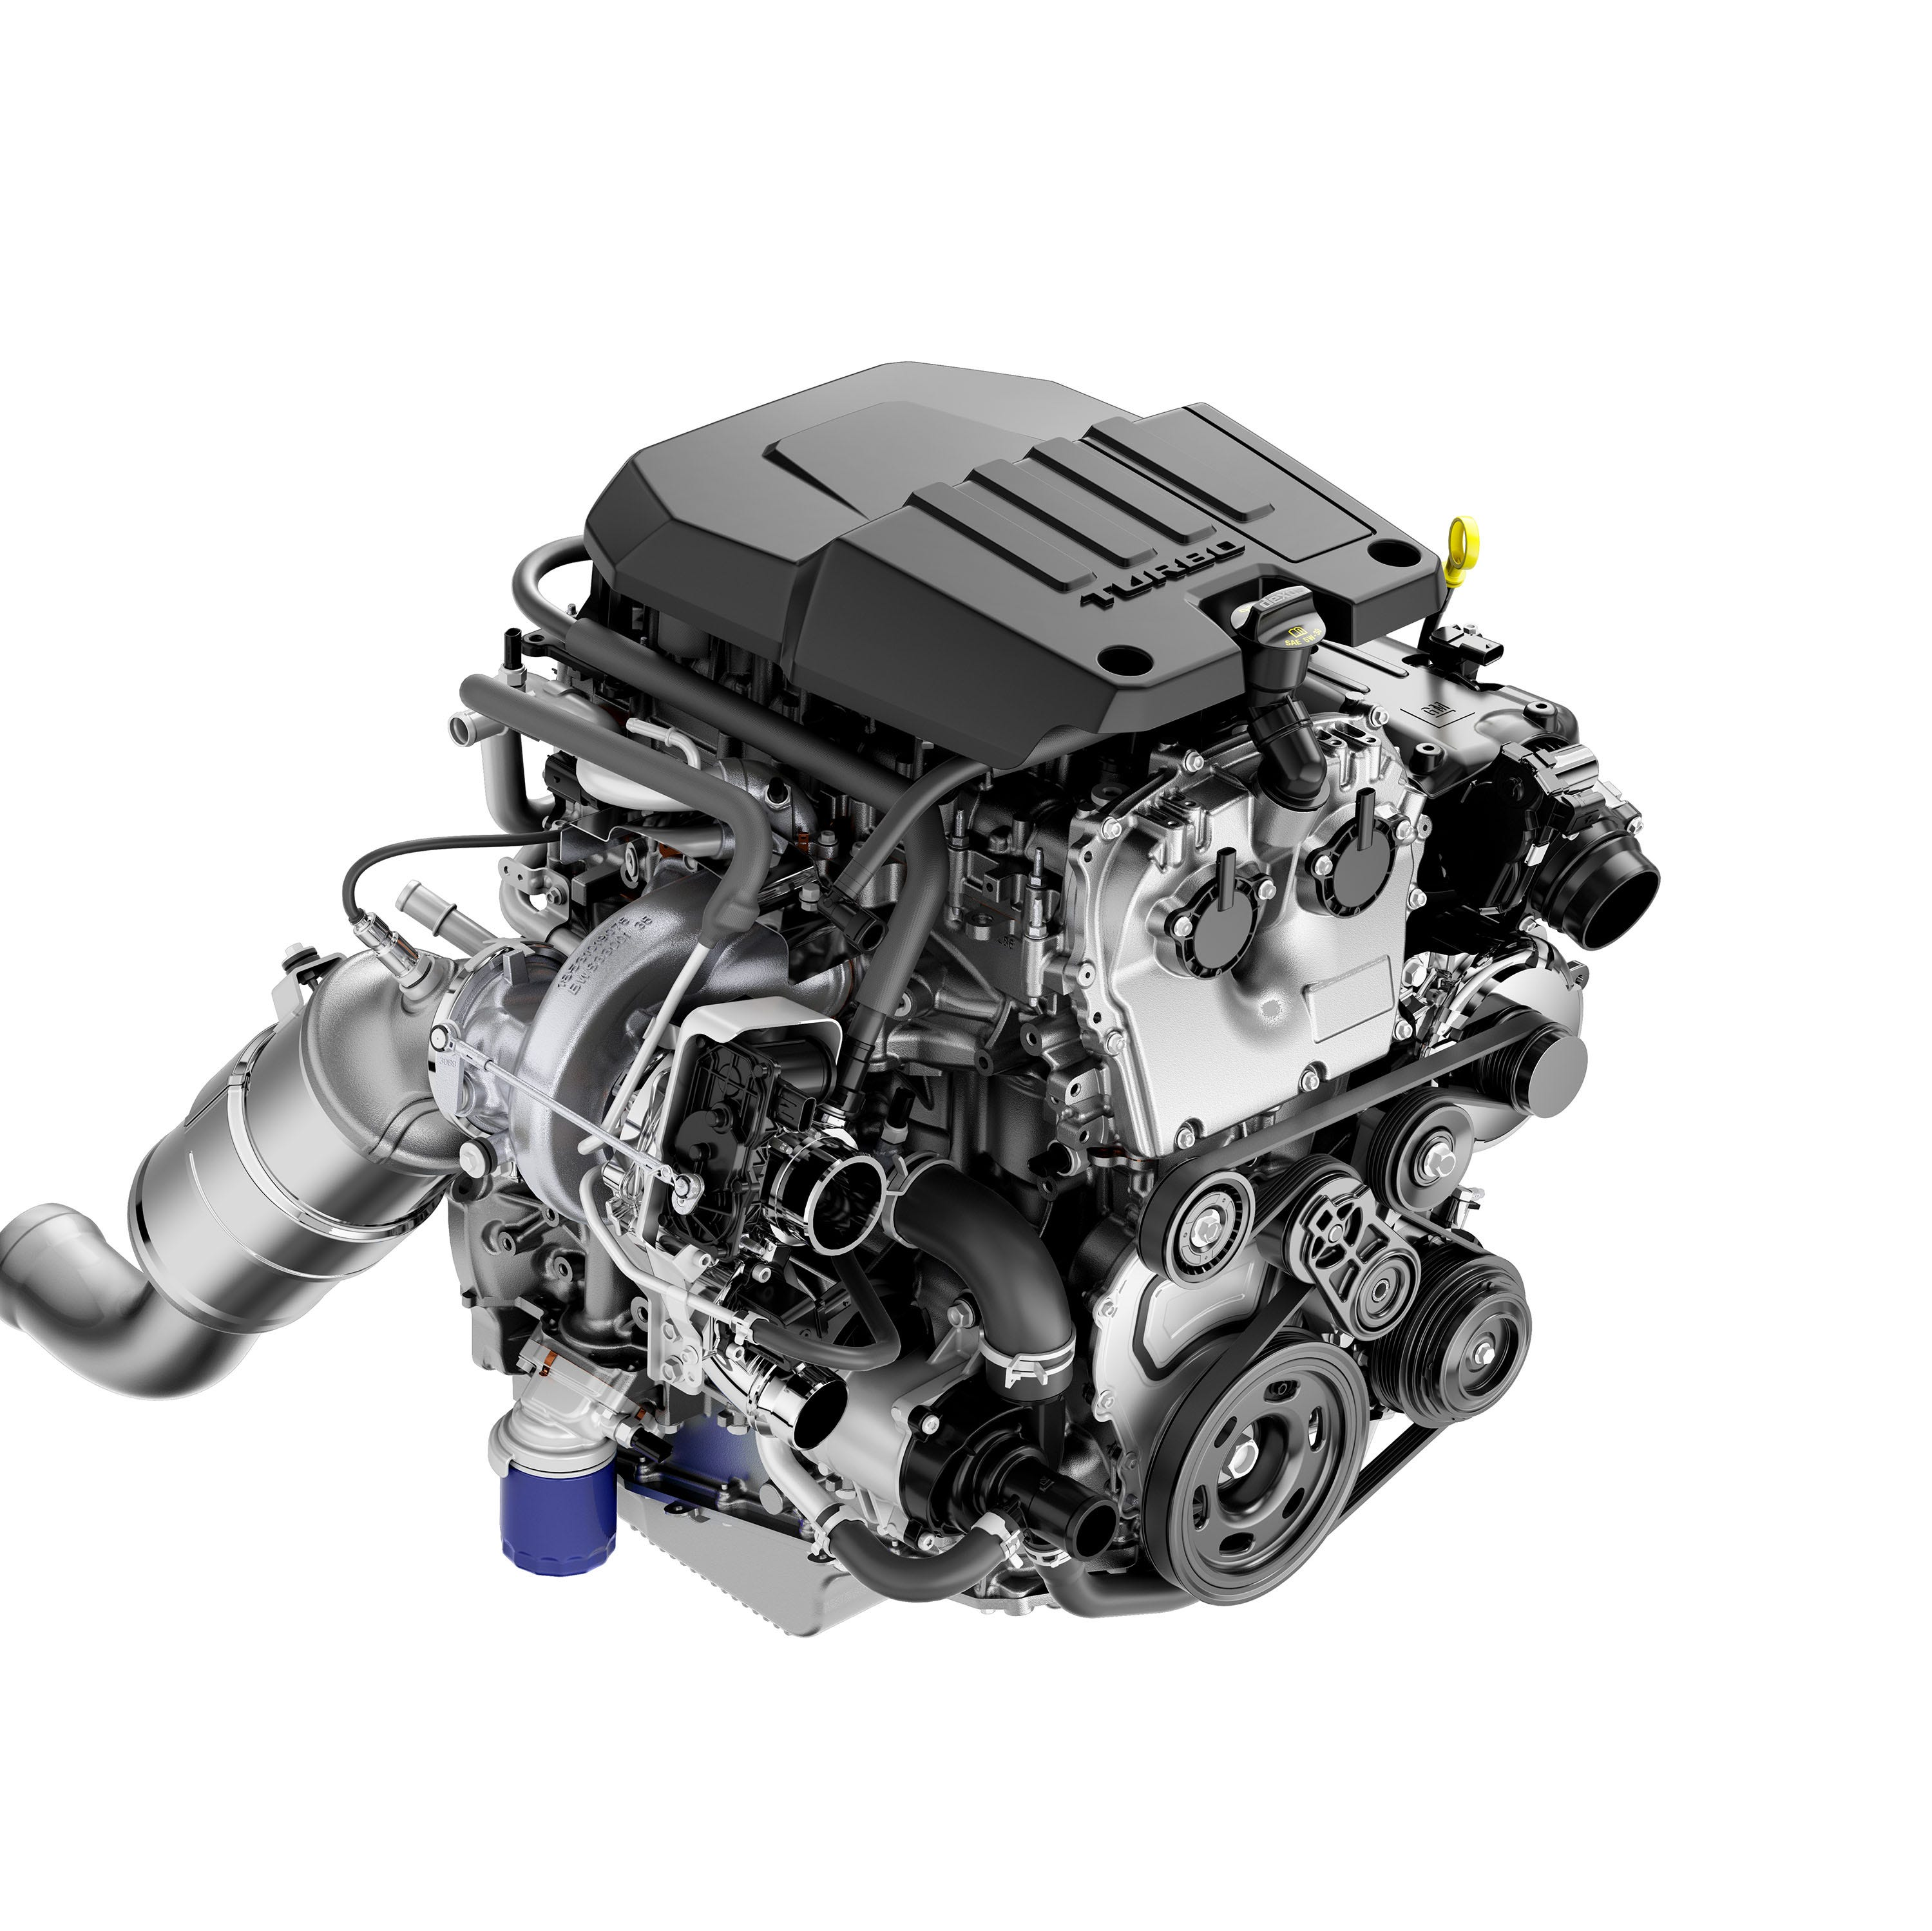 New 4-cylinder engine pushes fuel economy over 20 mpg for 2019 Silverado